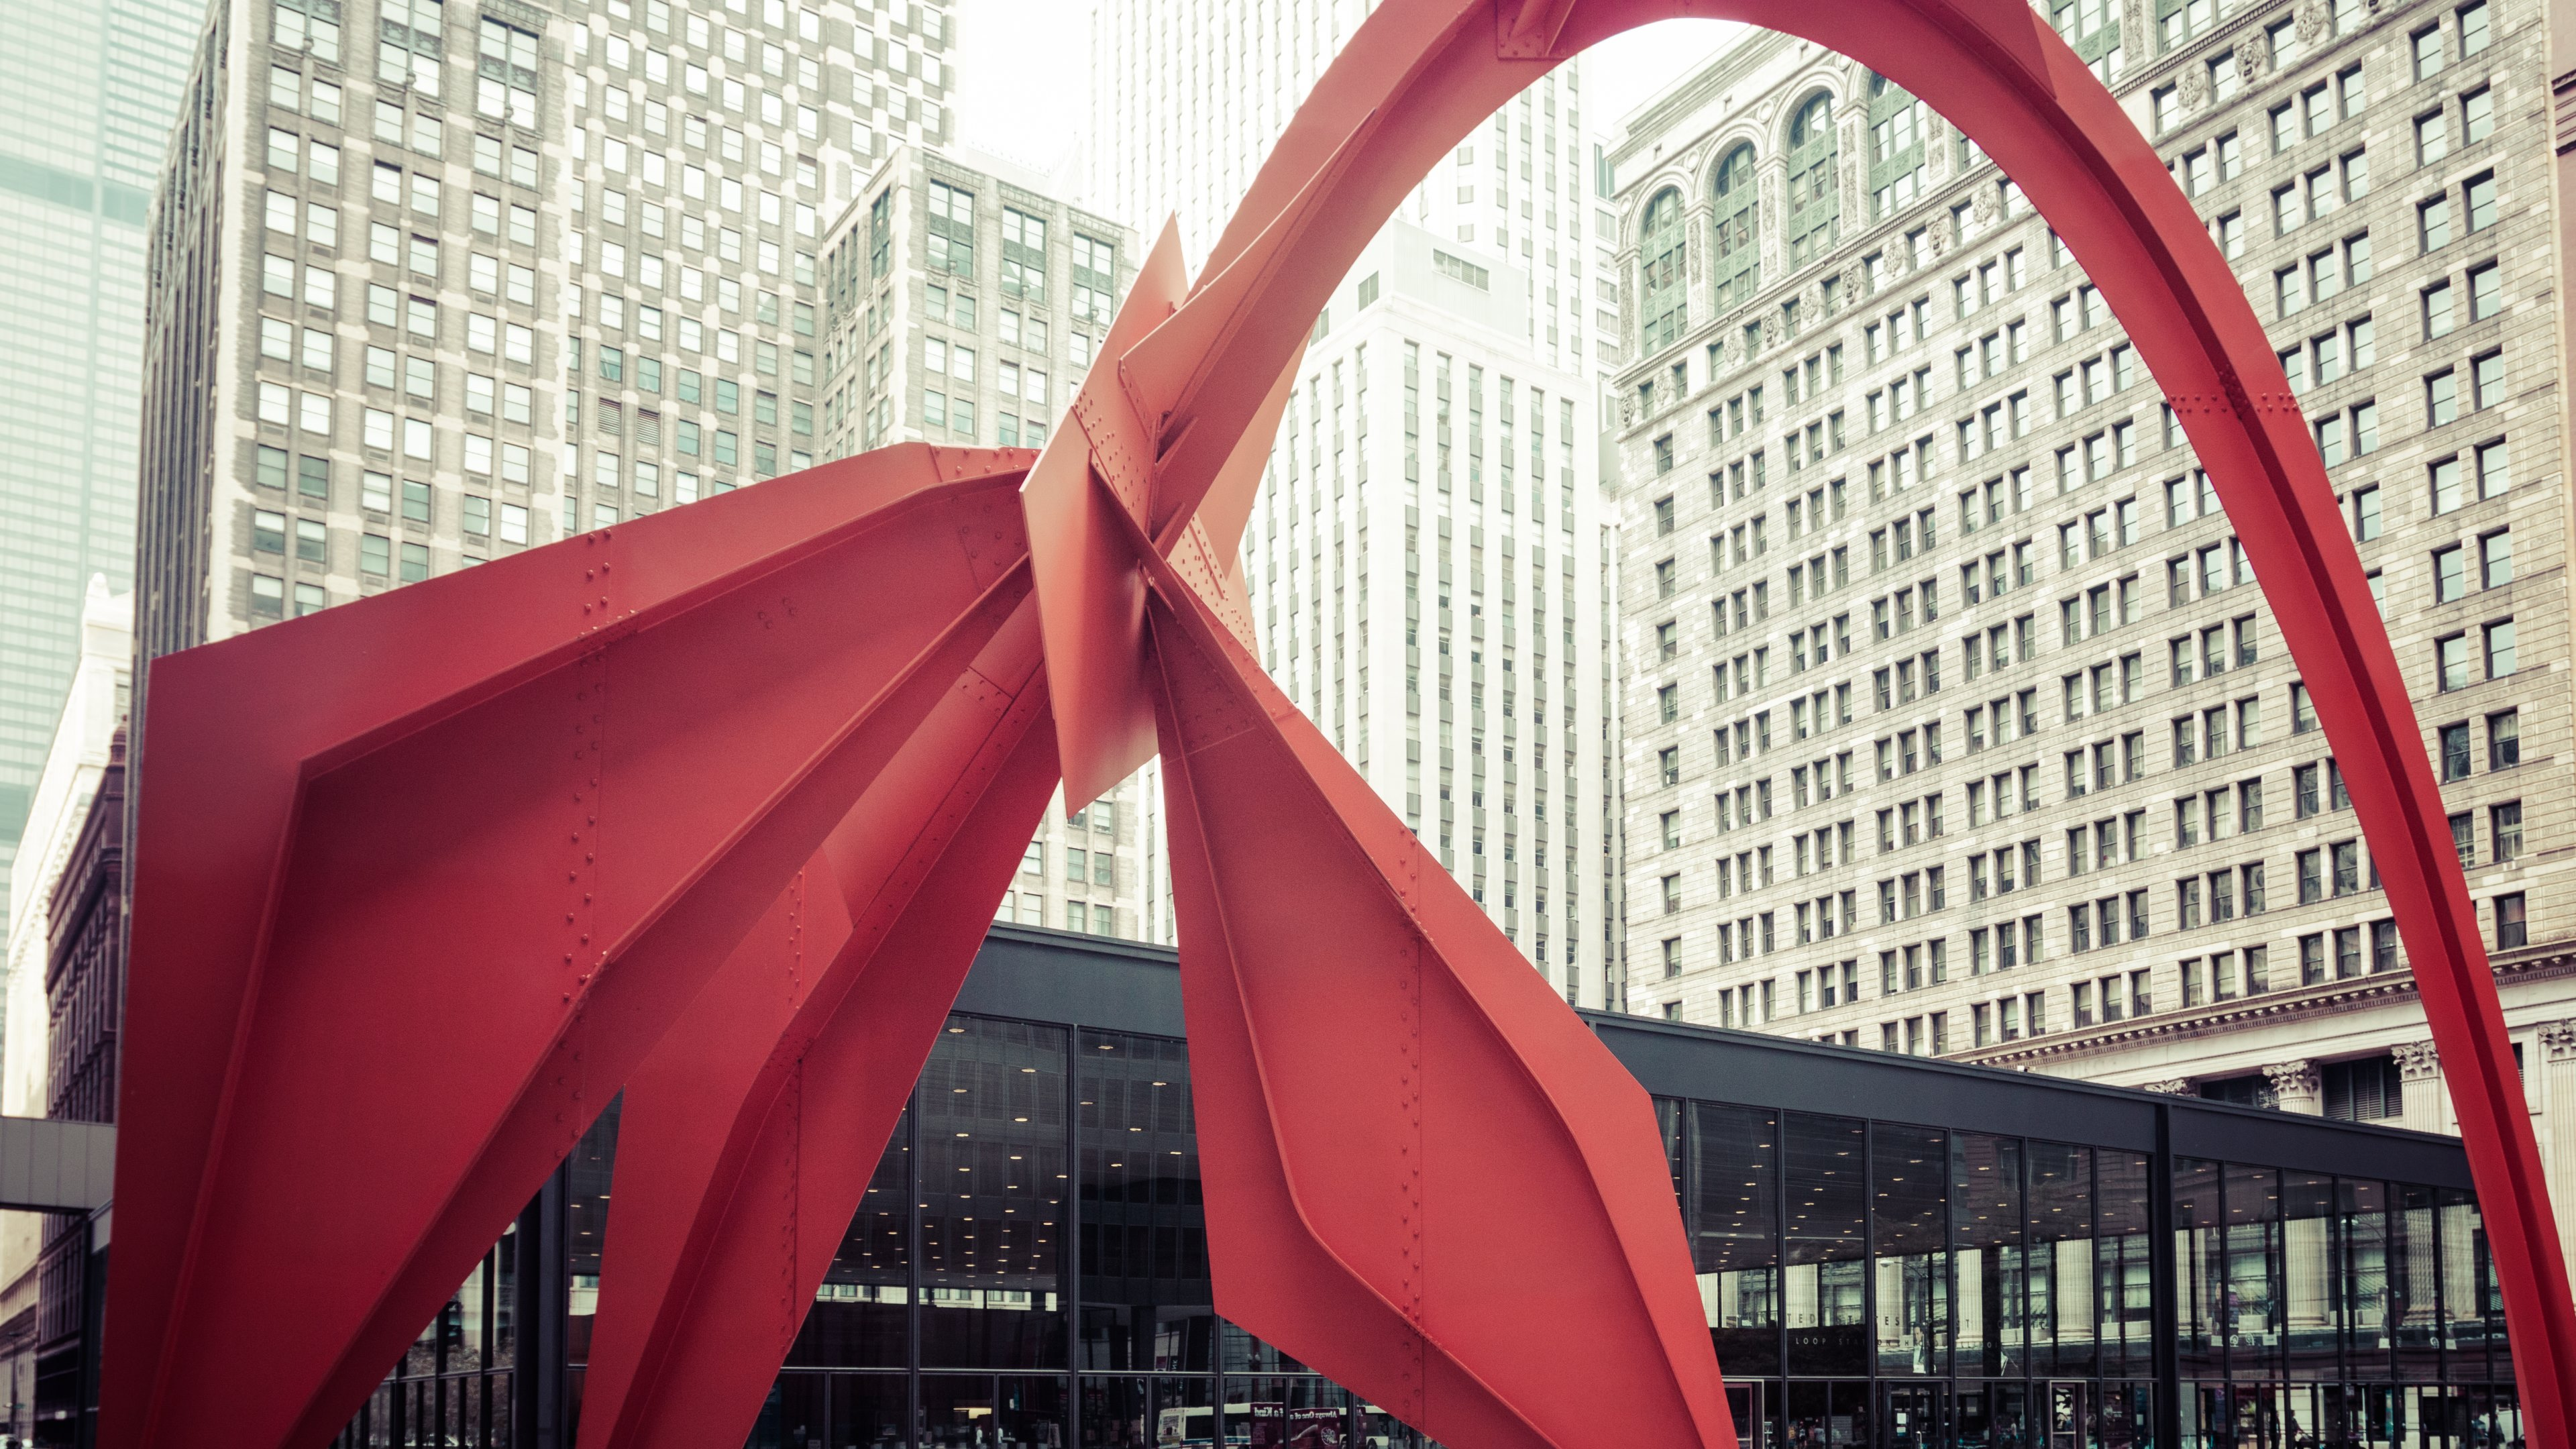 Flamingo Sculpture Chicago uhd